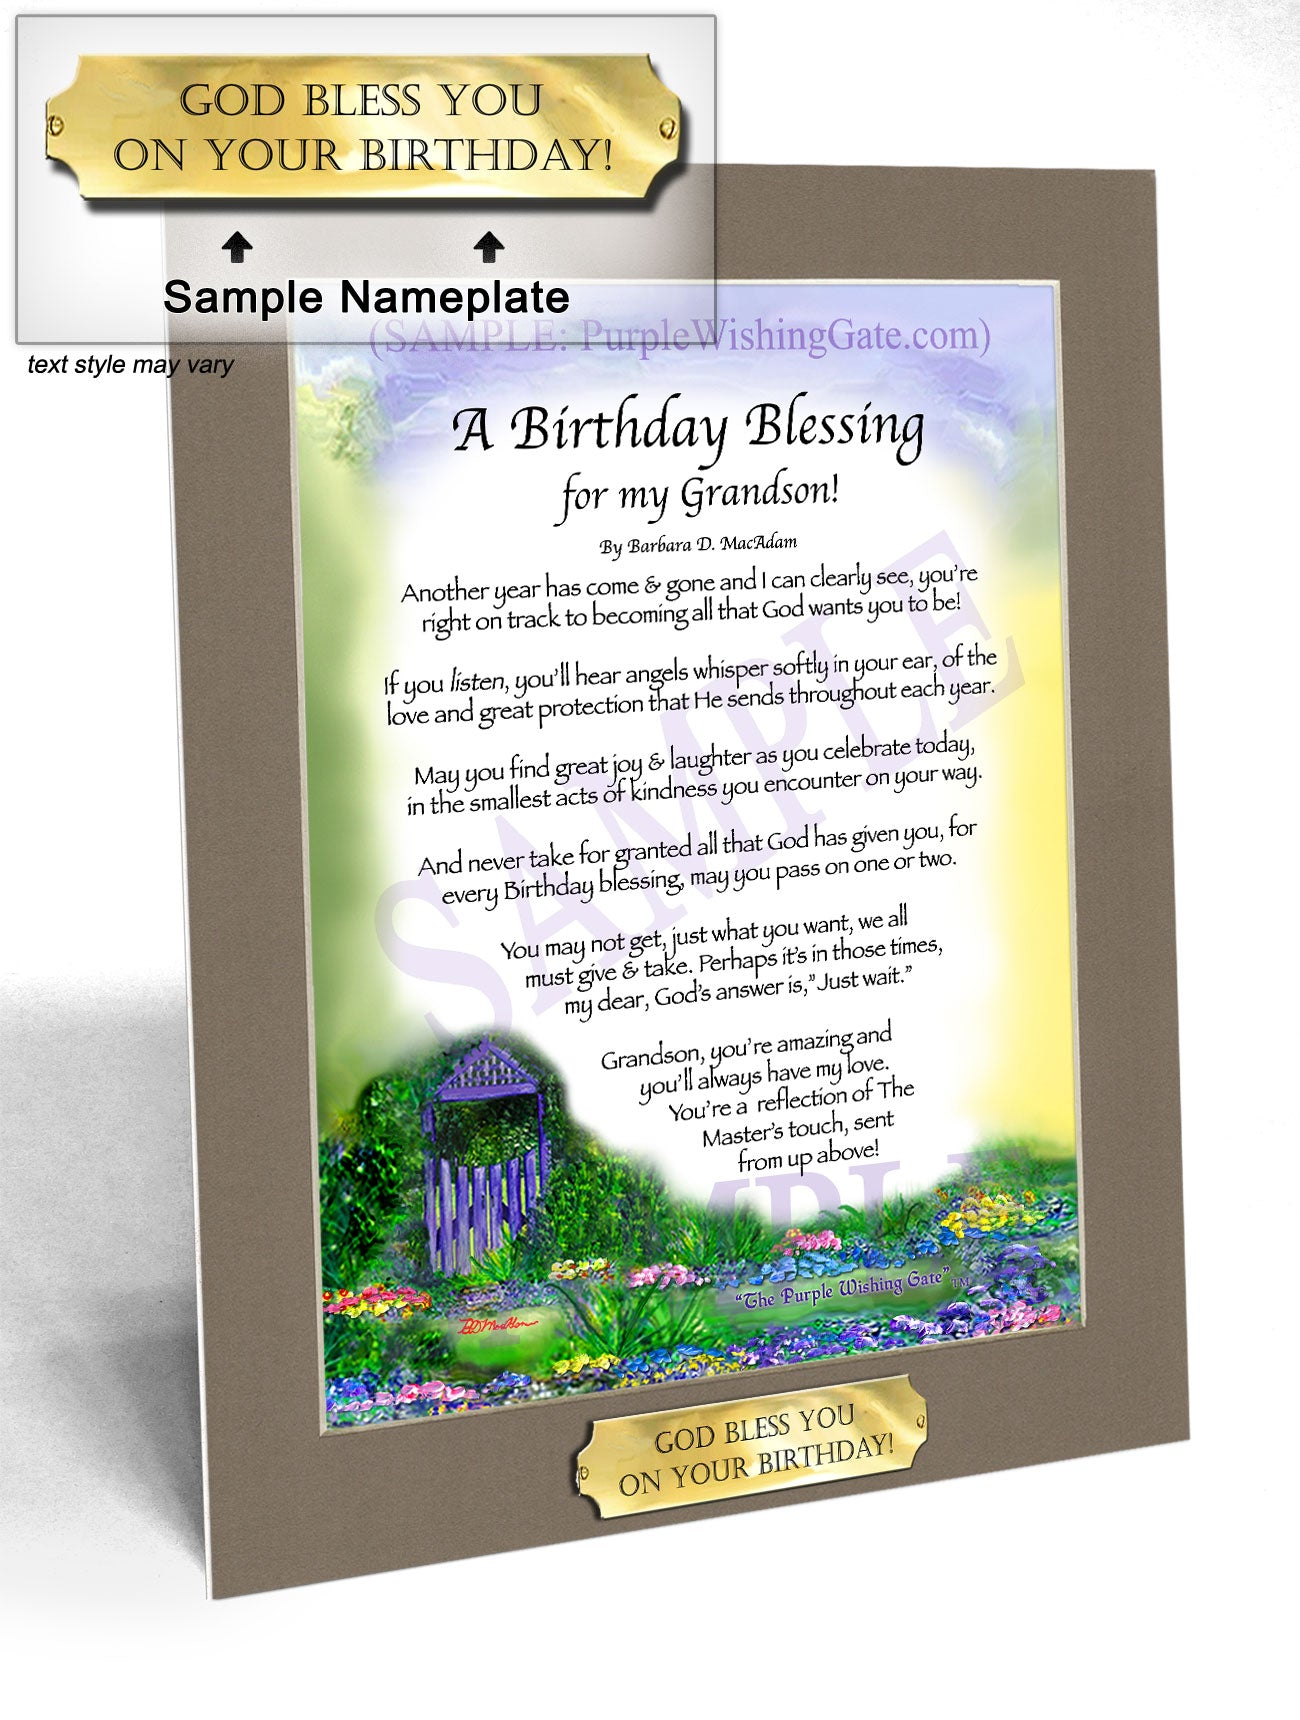 A Birthday Blessing for my Grandson! - Birthday Gift - PurpleWishingGate.com